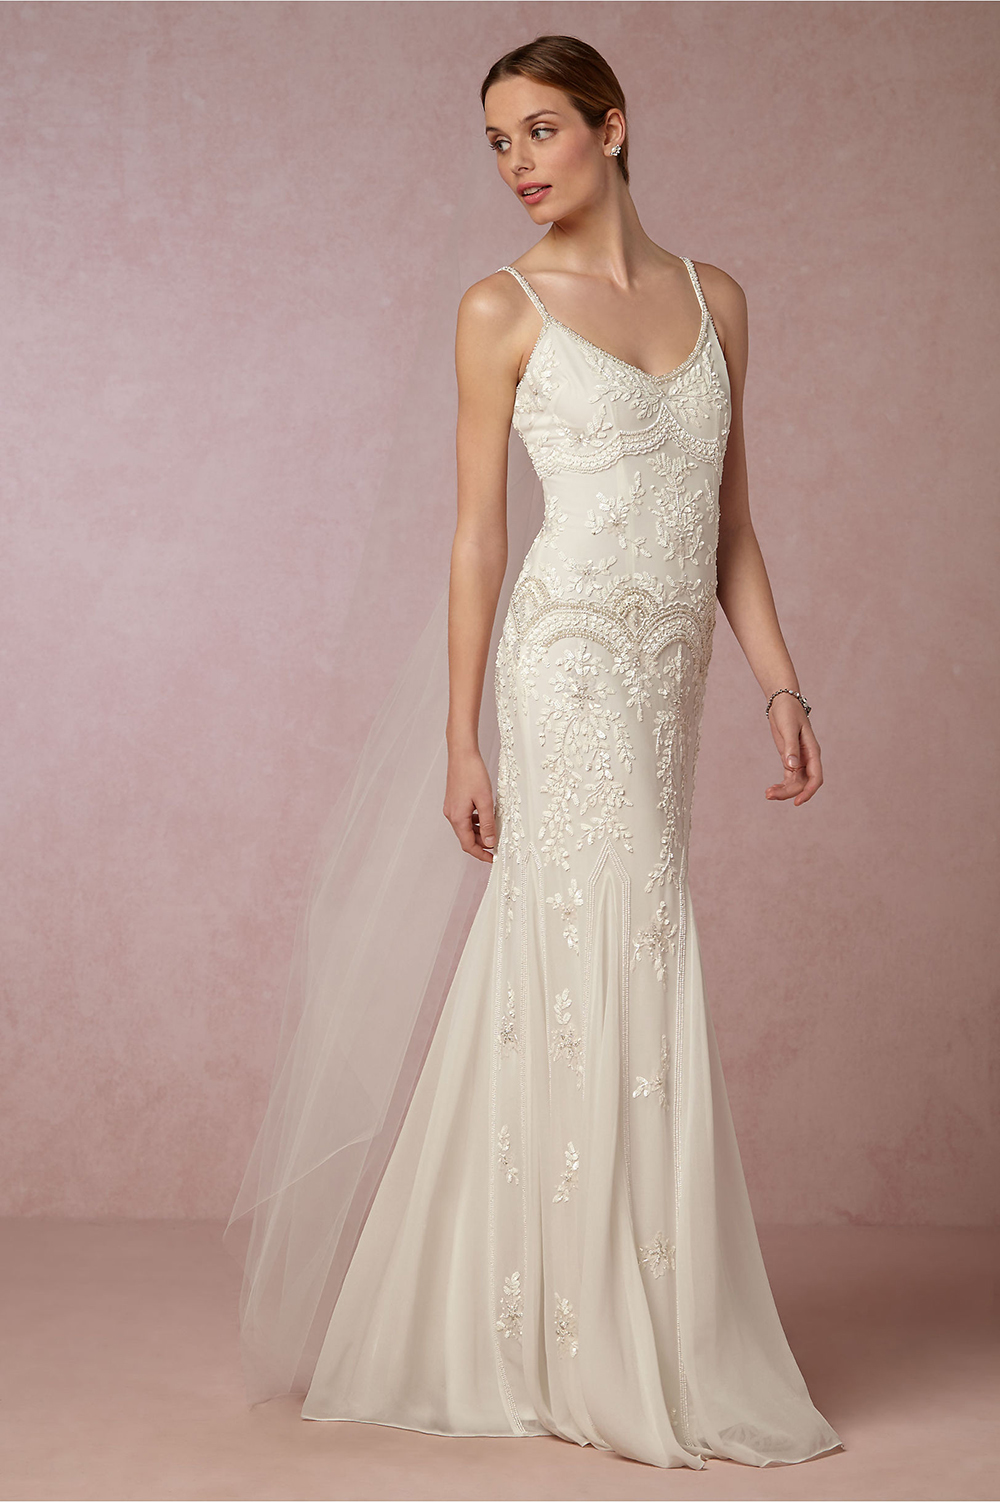 Fancy friday bhldn wedding gowns for Picture of a wedding dress